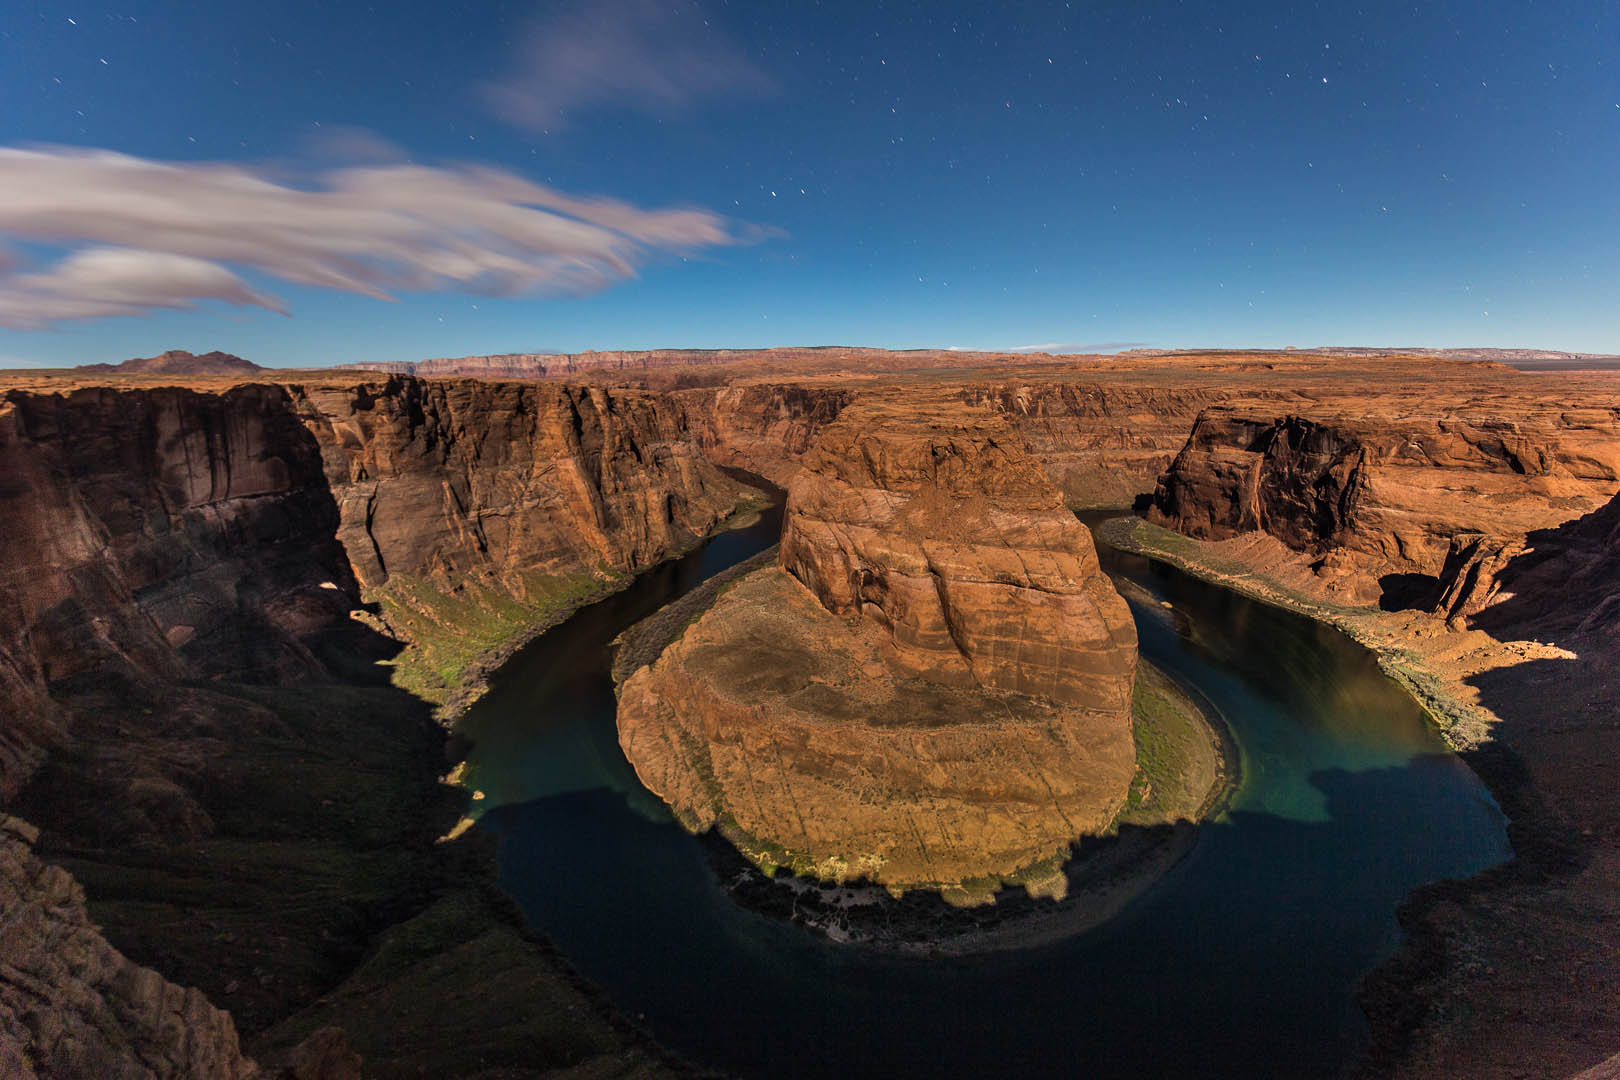 Horseshoe Bend, by night